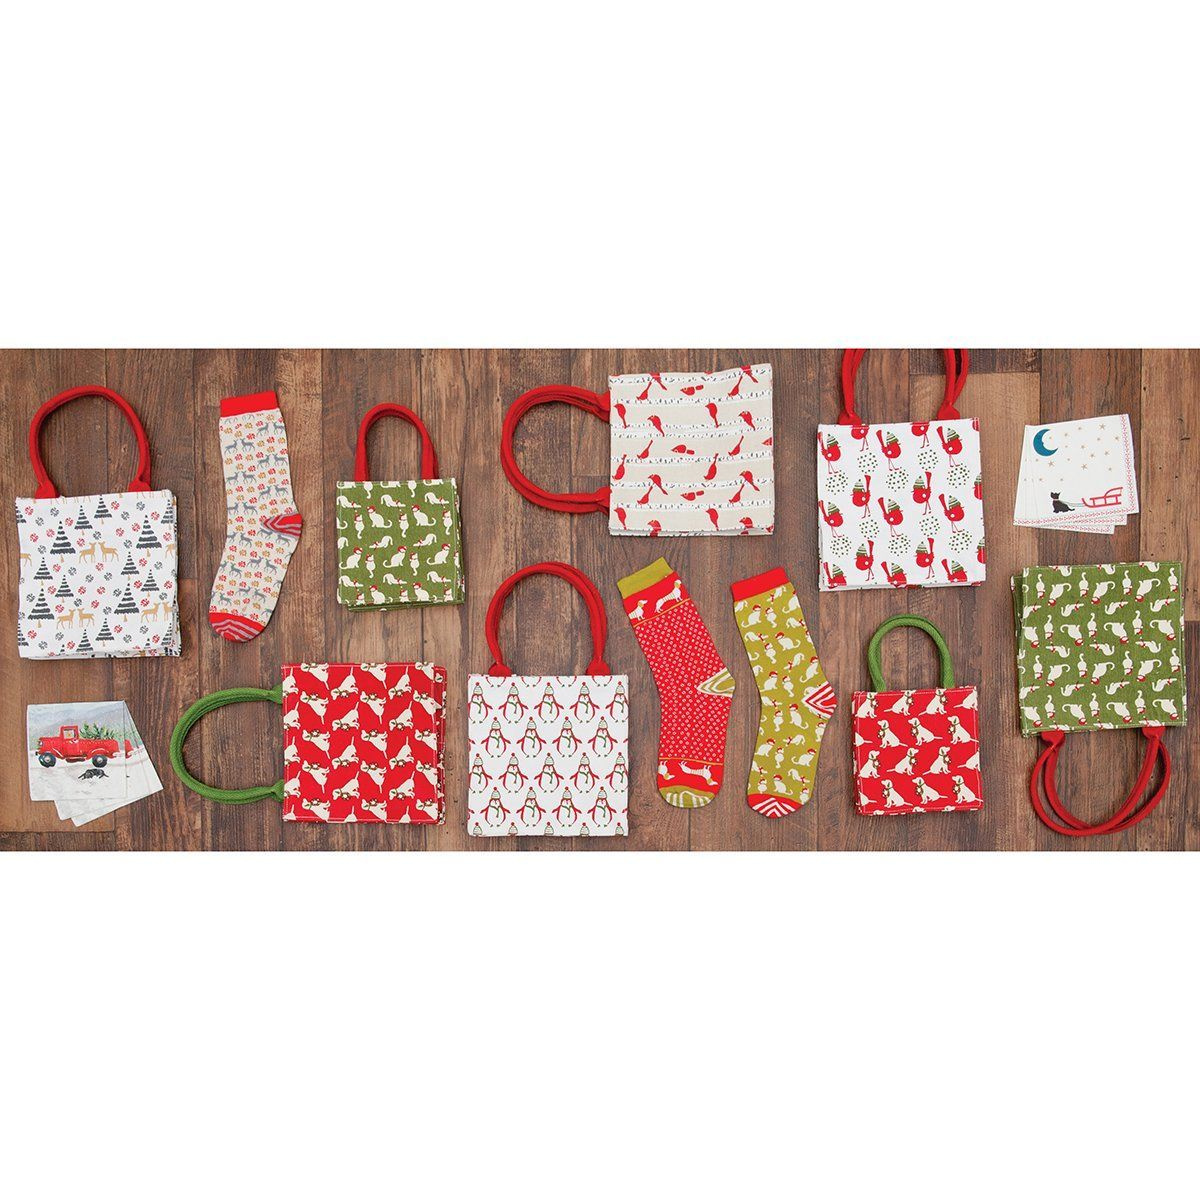 Monte Rosa Itsy Bitsy Gift Bag, Pack of 8 (Price is per Bag)